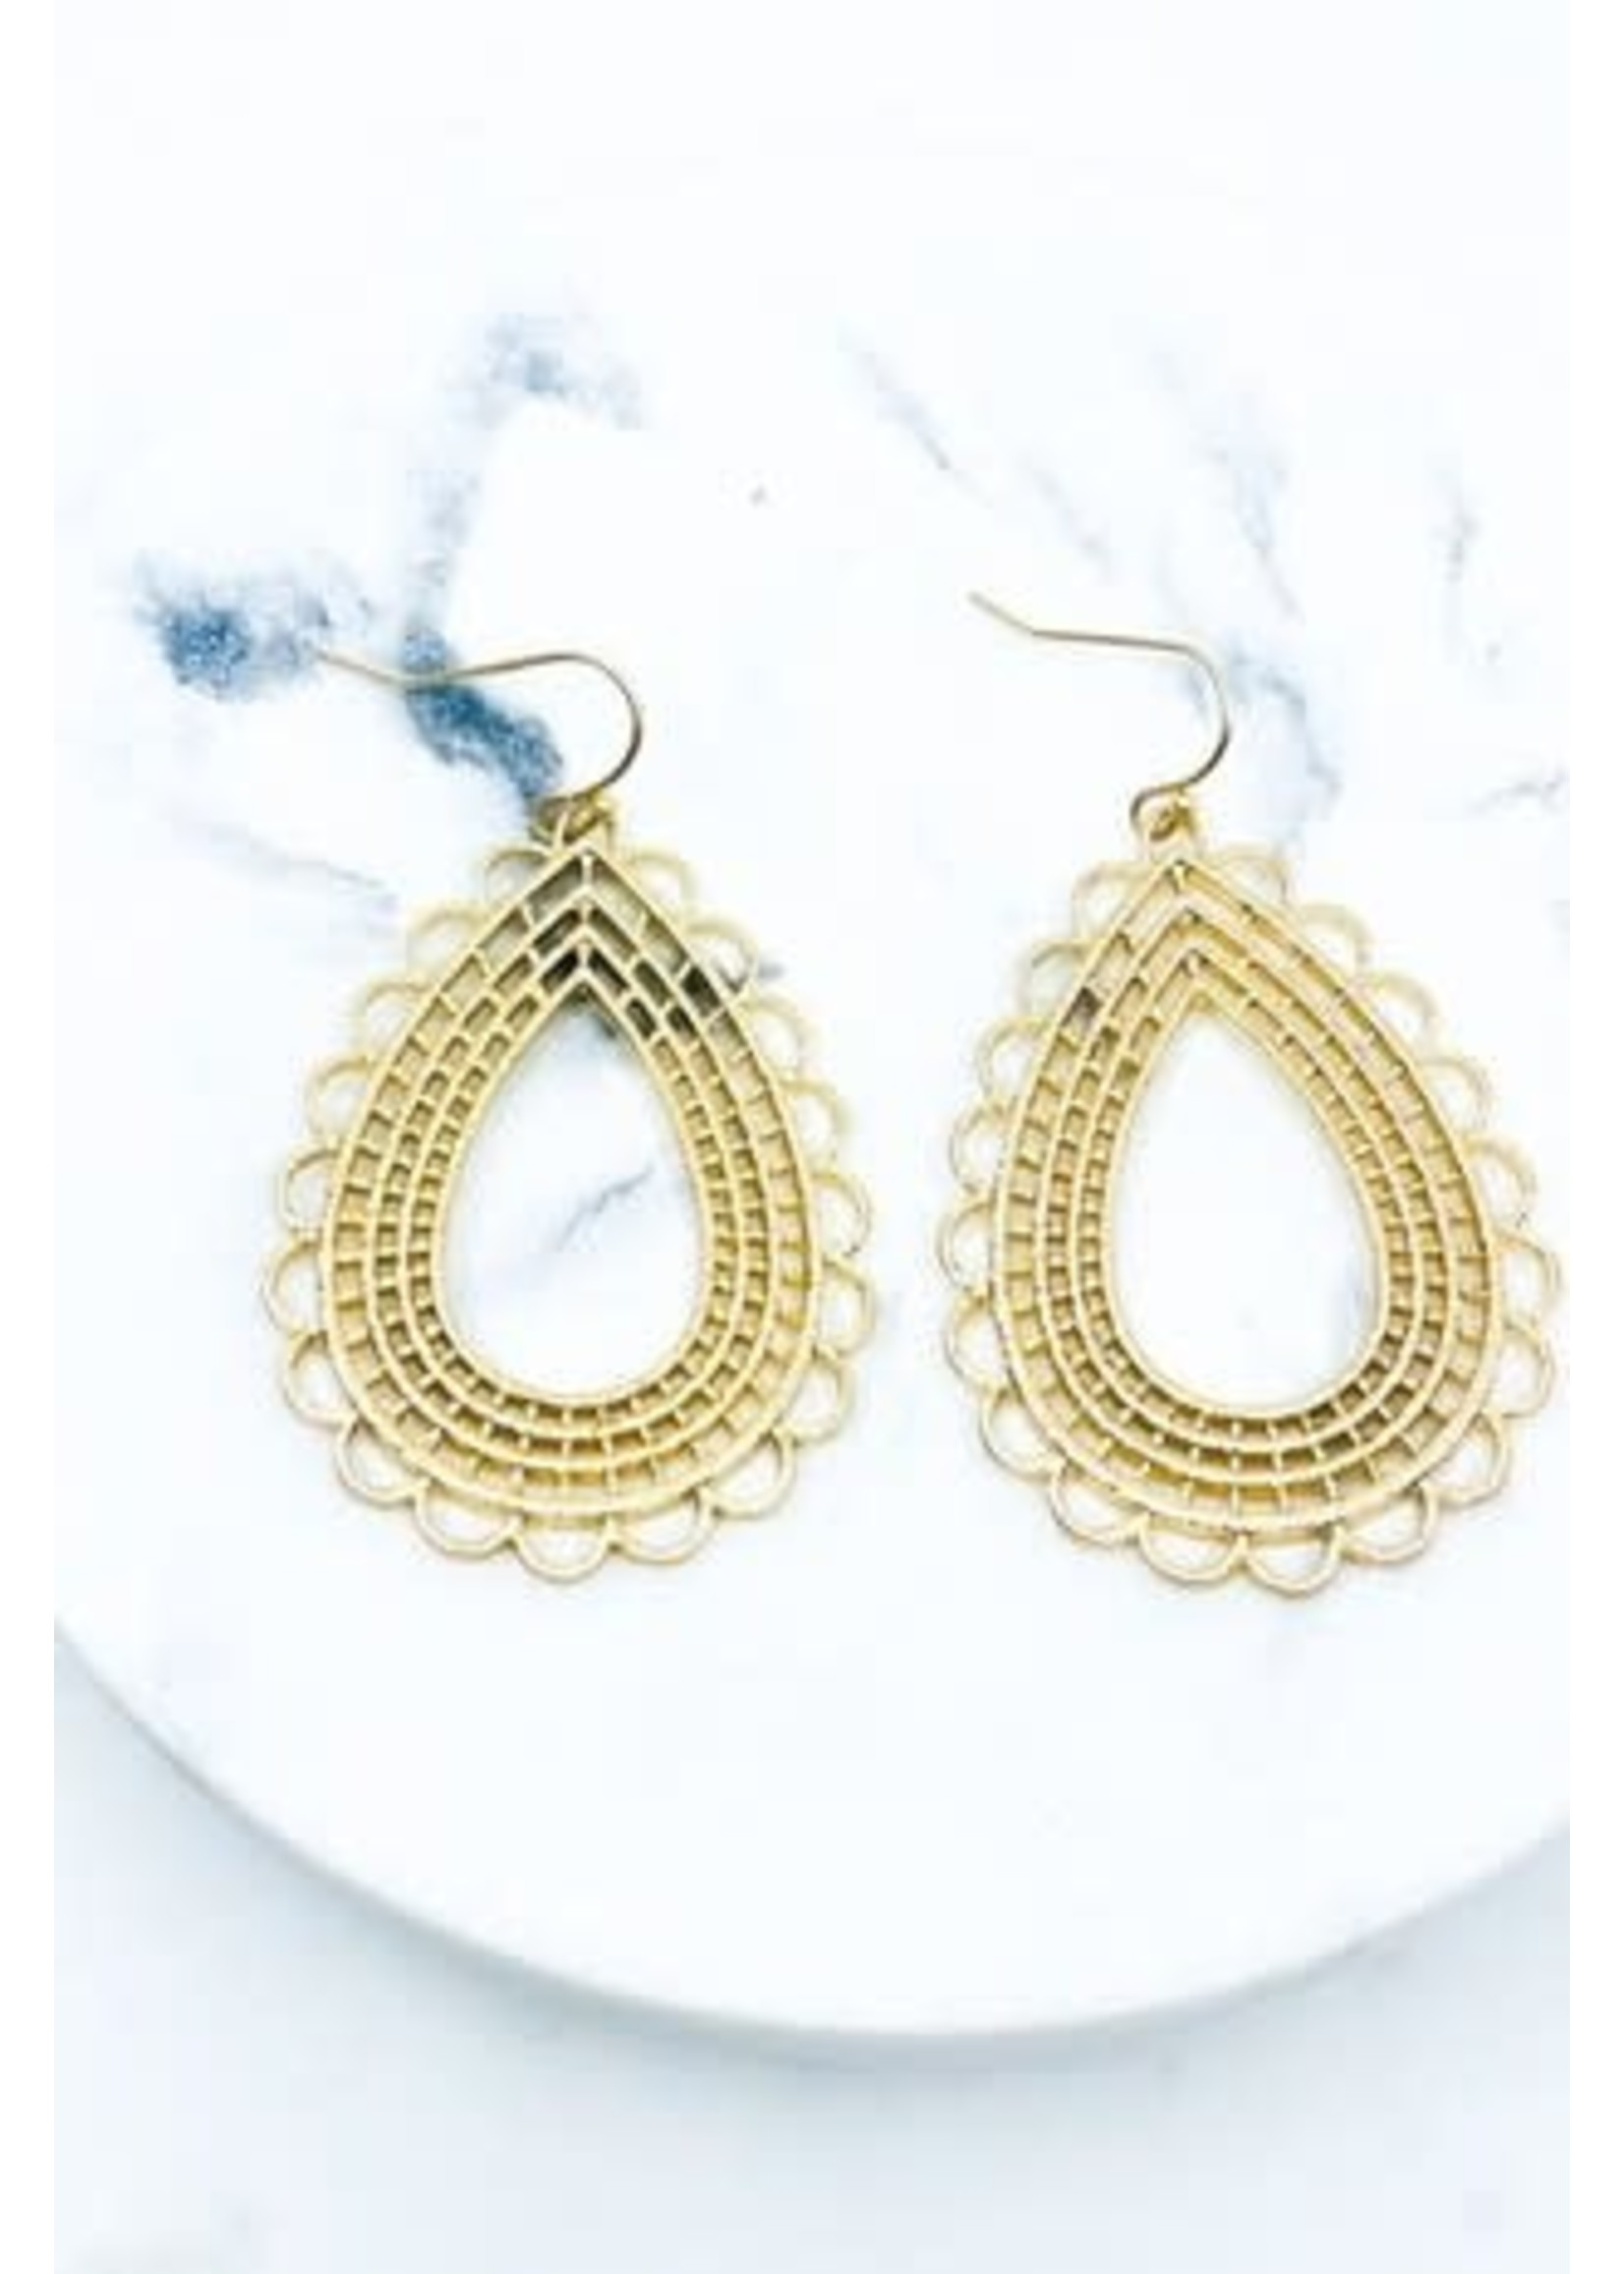 Antique Hoops Earrings